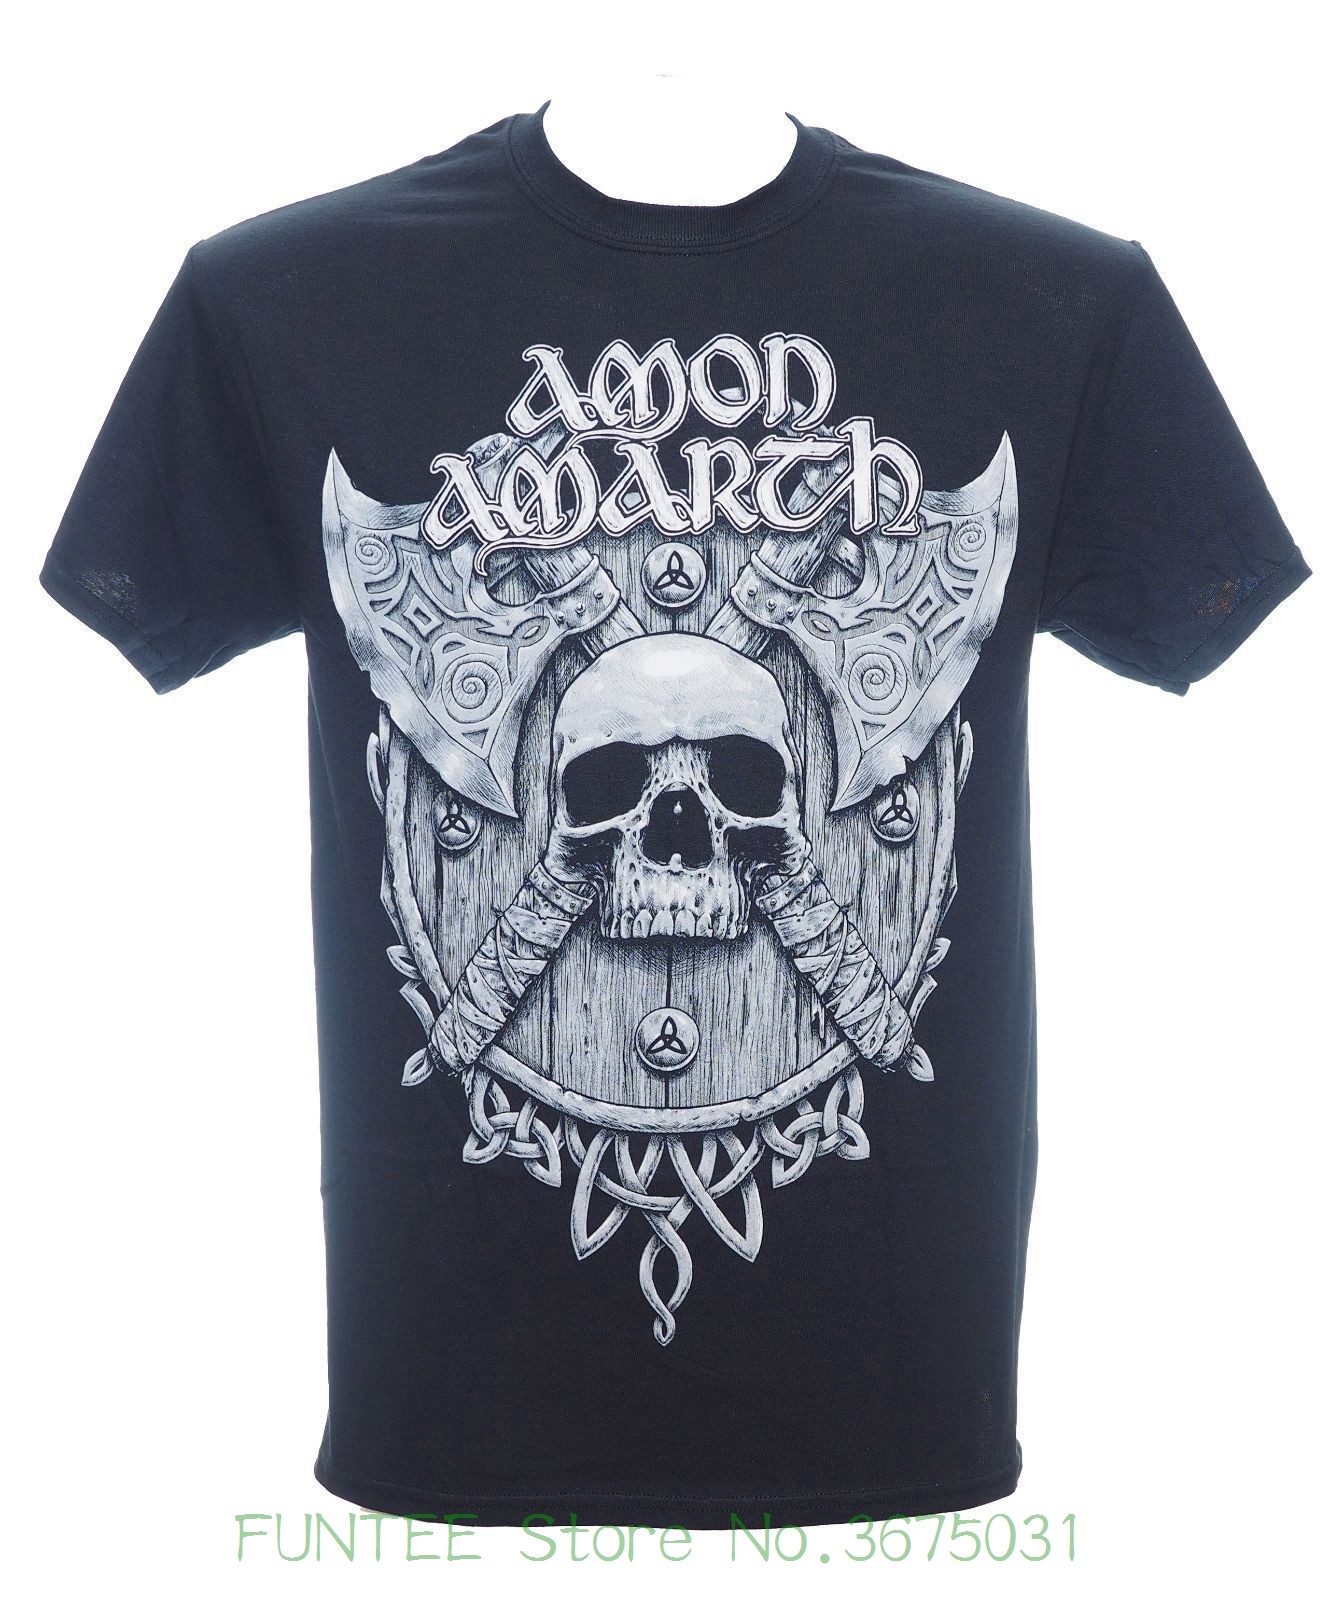 Short Sleeve Mens Formal Shirts Amon Amarth - Grey Skull And Shield T-shirt - Size Medium M - Viking Death Metal